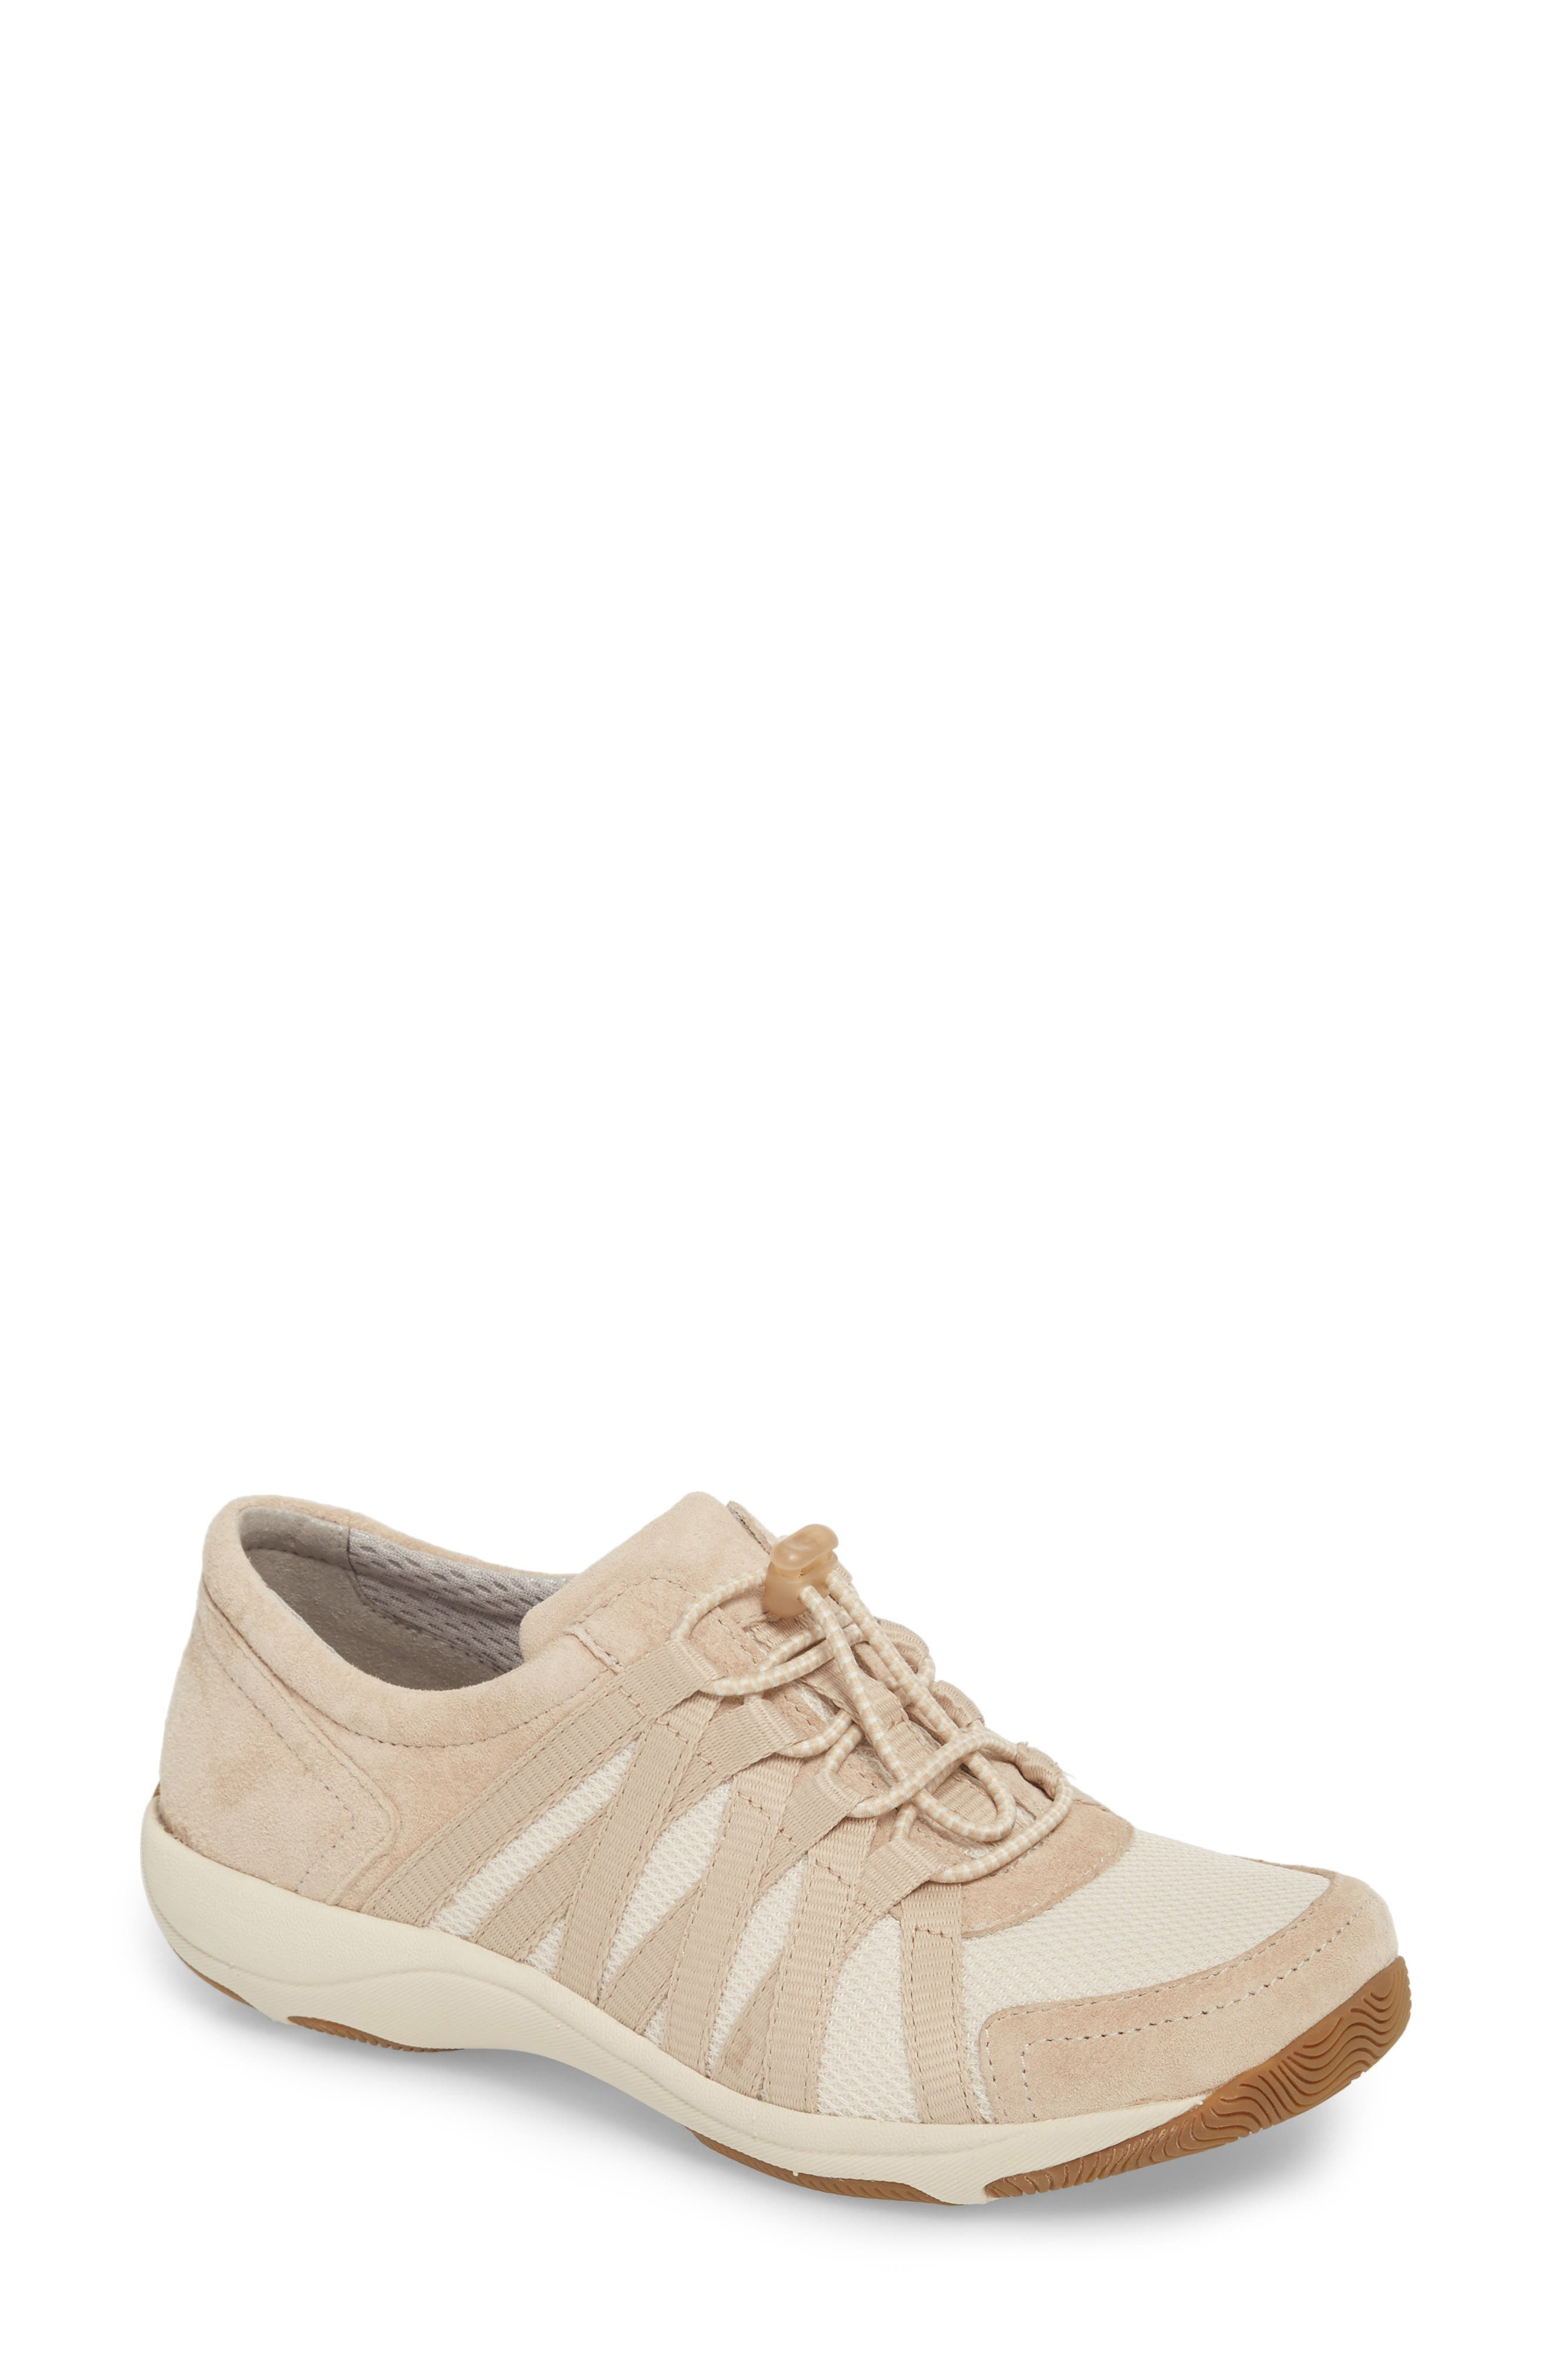 Halifax Collection Honor Sneaker,                             Main thumbnail 3, color,